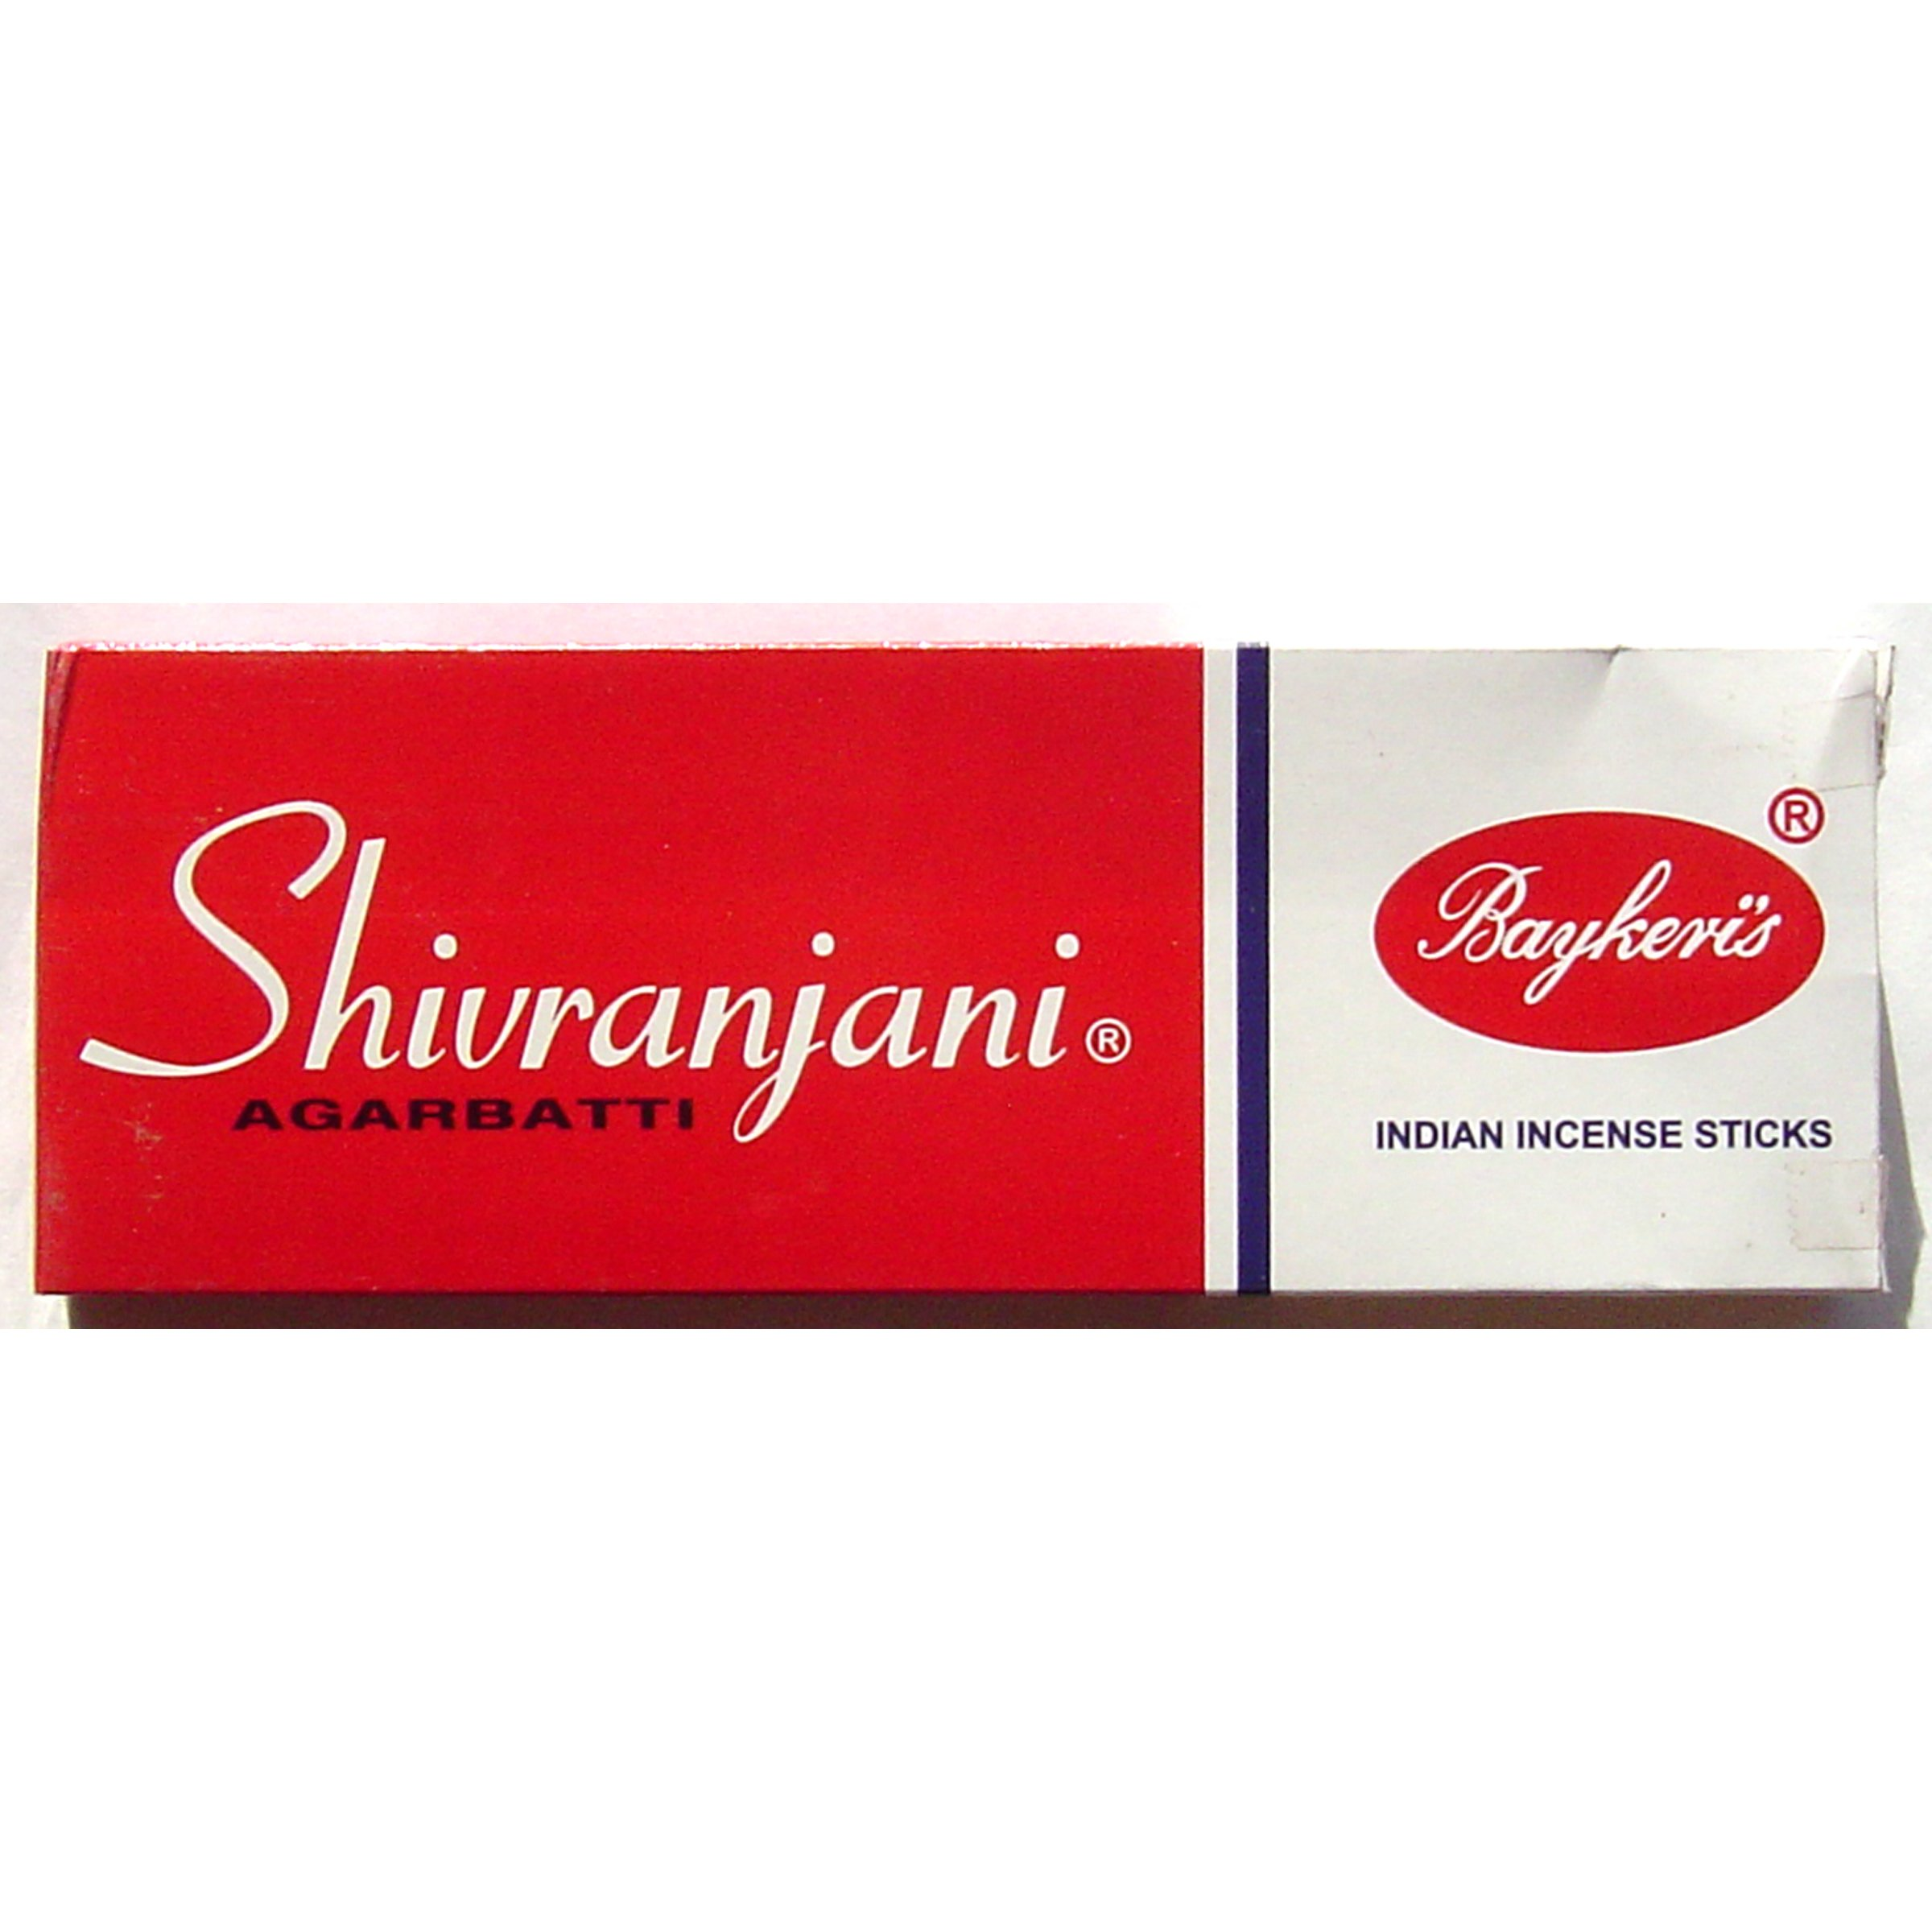 Shivranjani Incense - Traditional Packaging - 200 gram box- set of 4 boxes by Incense (Image #1)